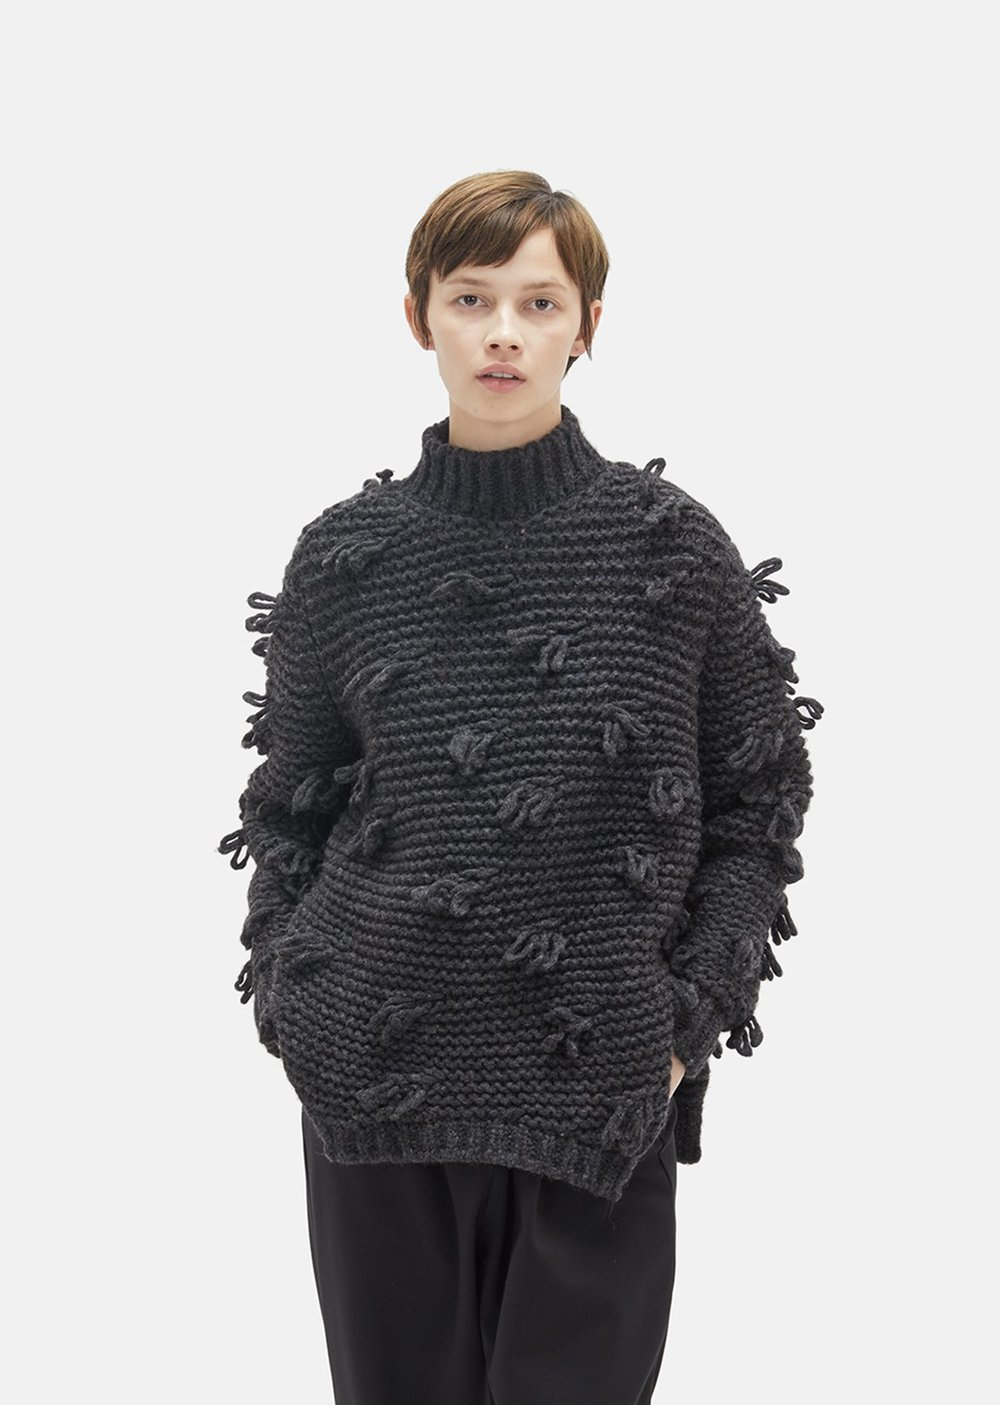 SIMONE ROCHA Tuft Chunky Knit Sweater  Charcoal grey chunky knit turtleneck sweater with allover looped accents. Oversized fit. Ribbed trim on the neck, cuffs, and hem. Open sides with tapered hem. Color: Charcoal. 53% Alpaca, 34% Polyamide, 13% Virgin Wool.